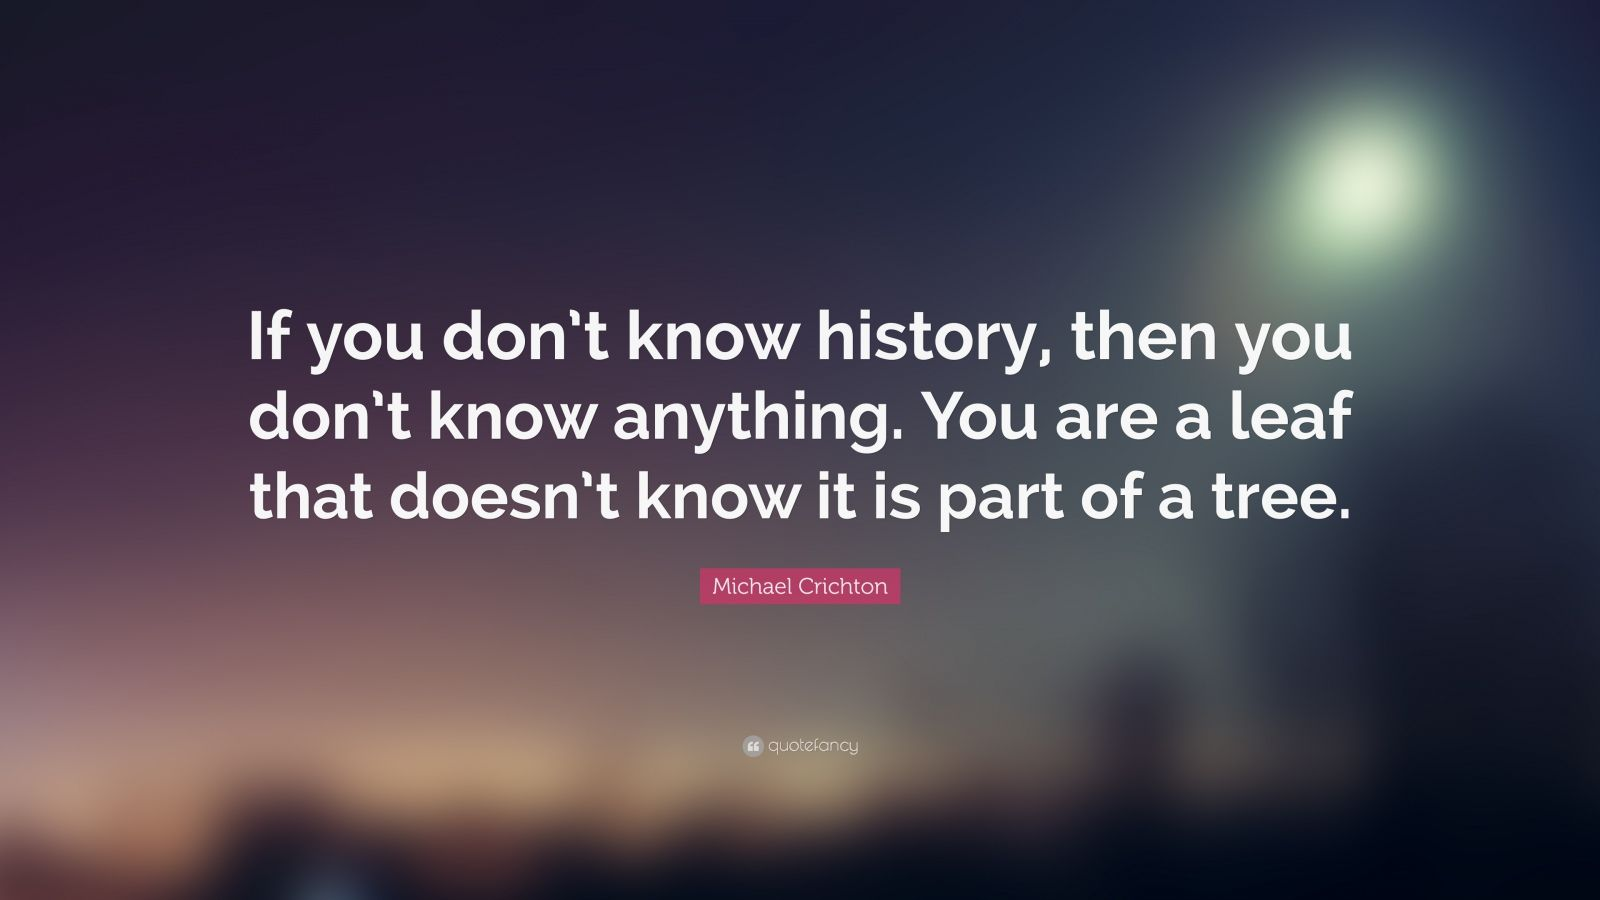 """Michael Crichton Quote: """"If you don't know history, then you don't know anything. You are a leaf that doesn't know it is part of a tree."""""""